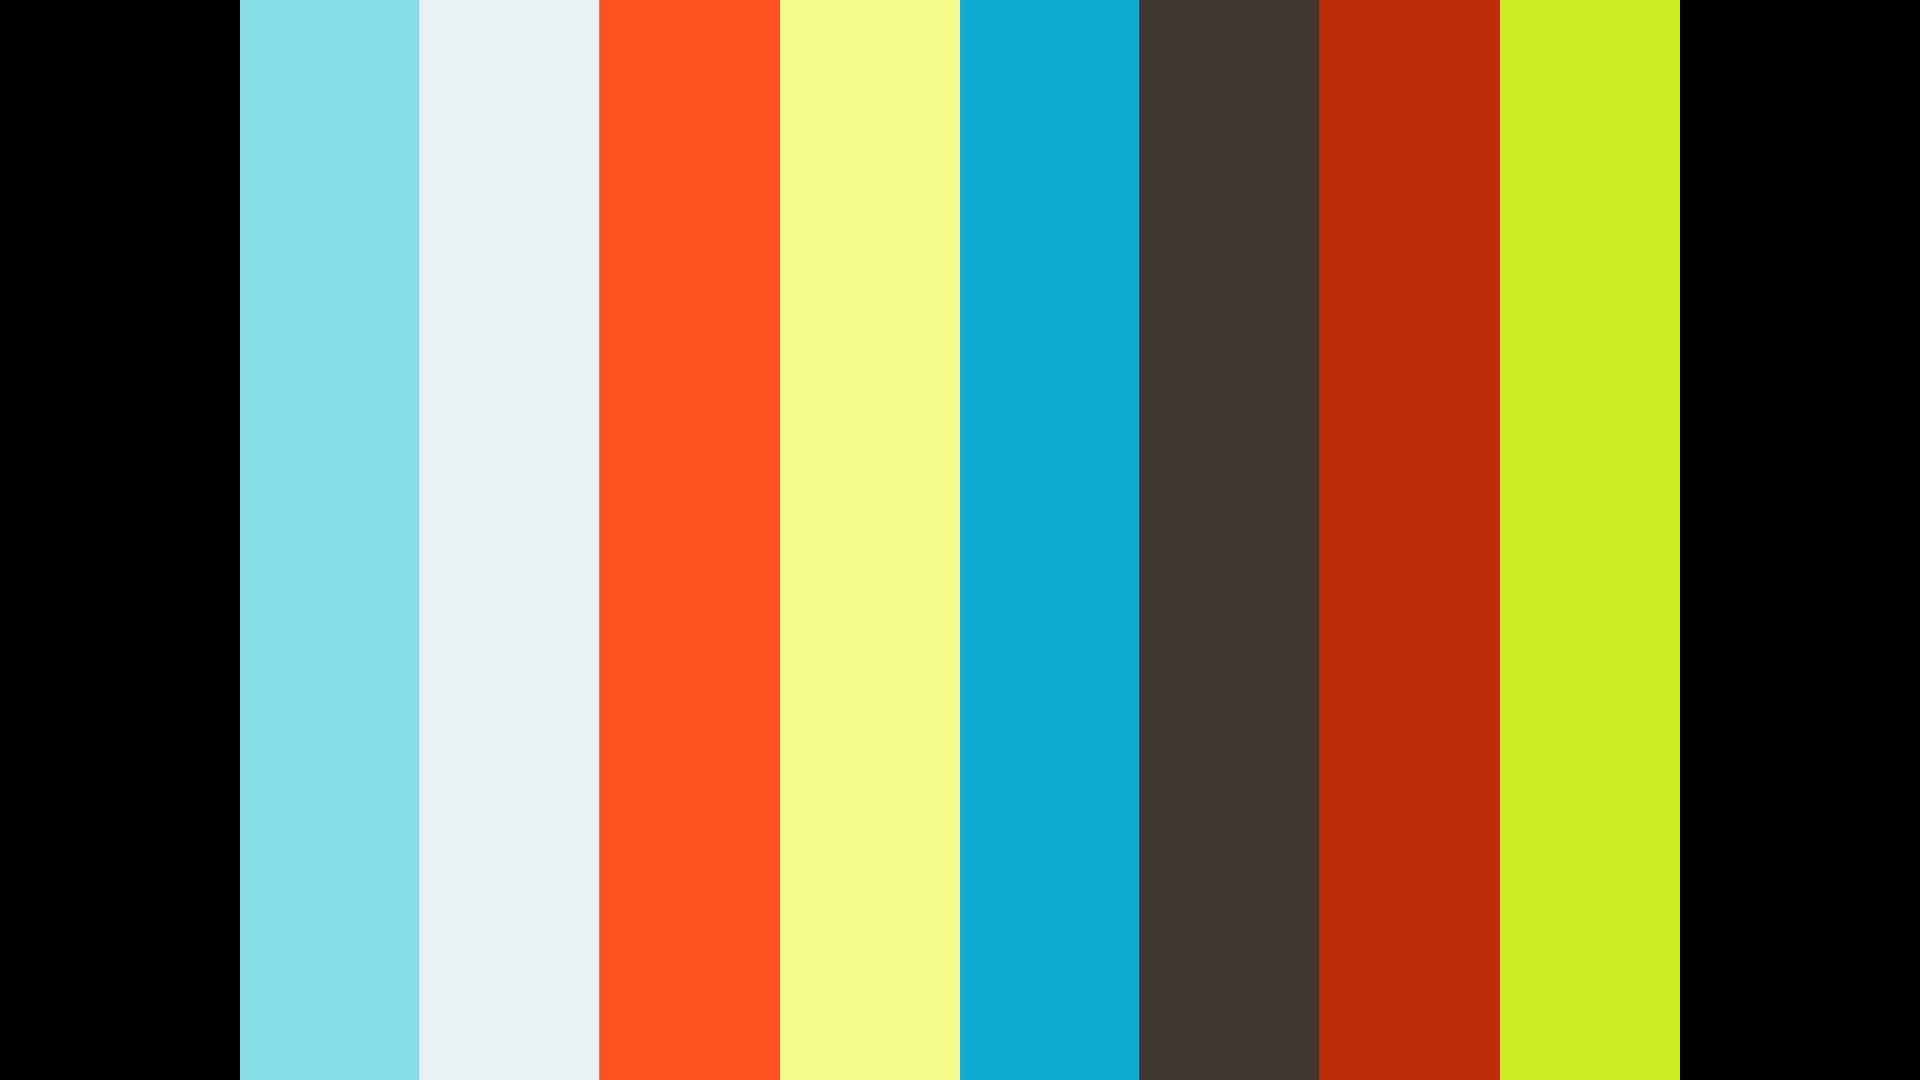 Qmatic_Great Experience_After Movie Haarlem 2015